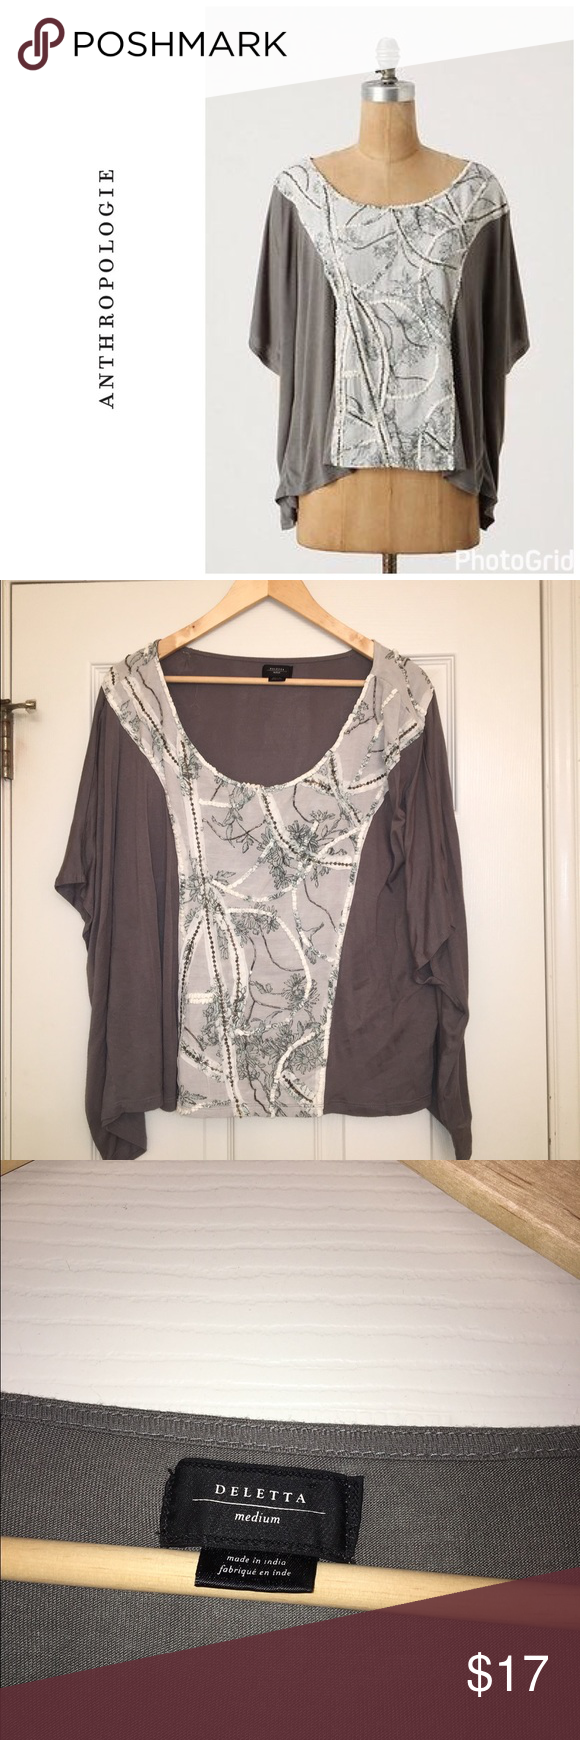 Anthropologie Stitched Mantle top Size m and is a relaxed fit so will fit a variety of sizes . I would recommend a 6-10 wear this . Flowy top. Embroidered front panel . In like new condition . By Deletta . Anthropologie Tops